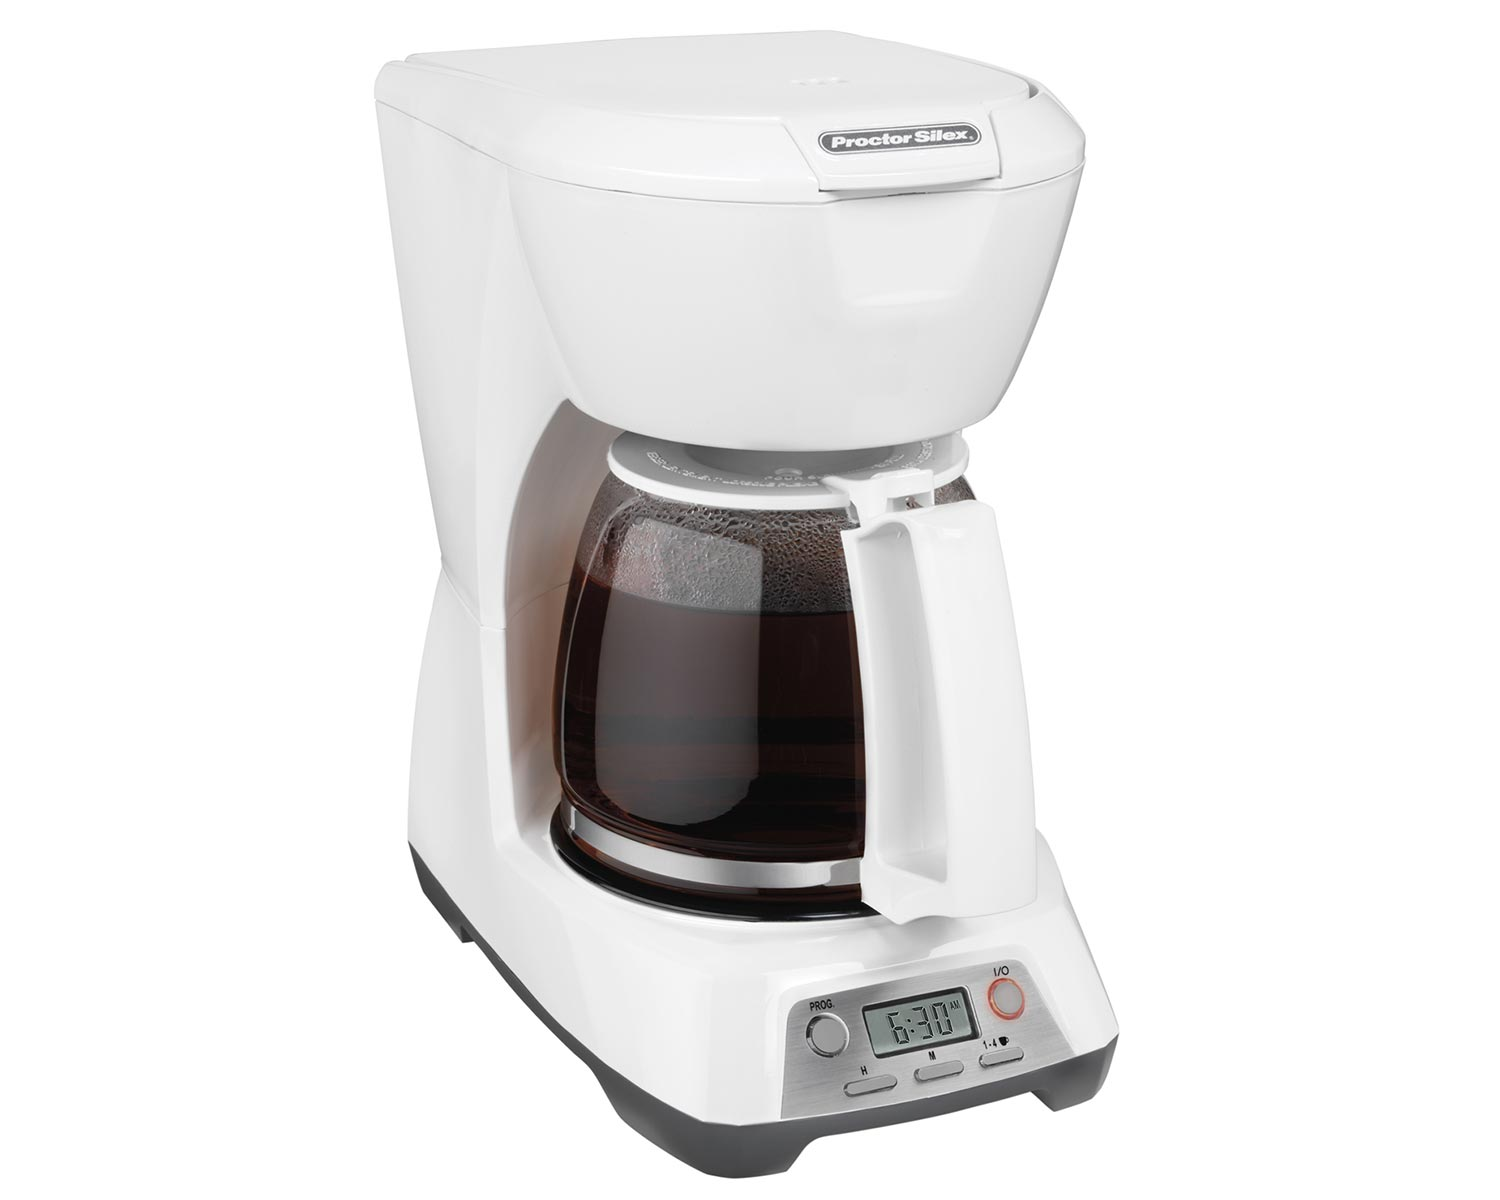 Programmable 12 Cup Coffee Maker (white)-43671 Small Size